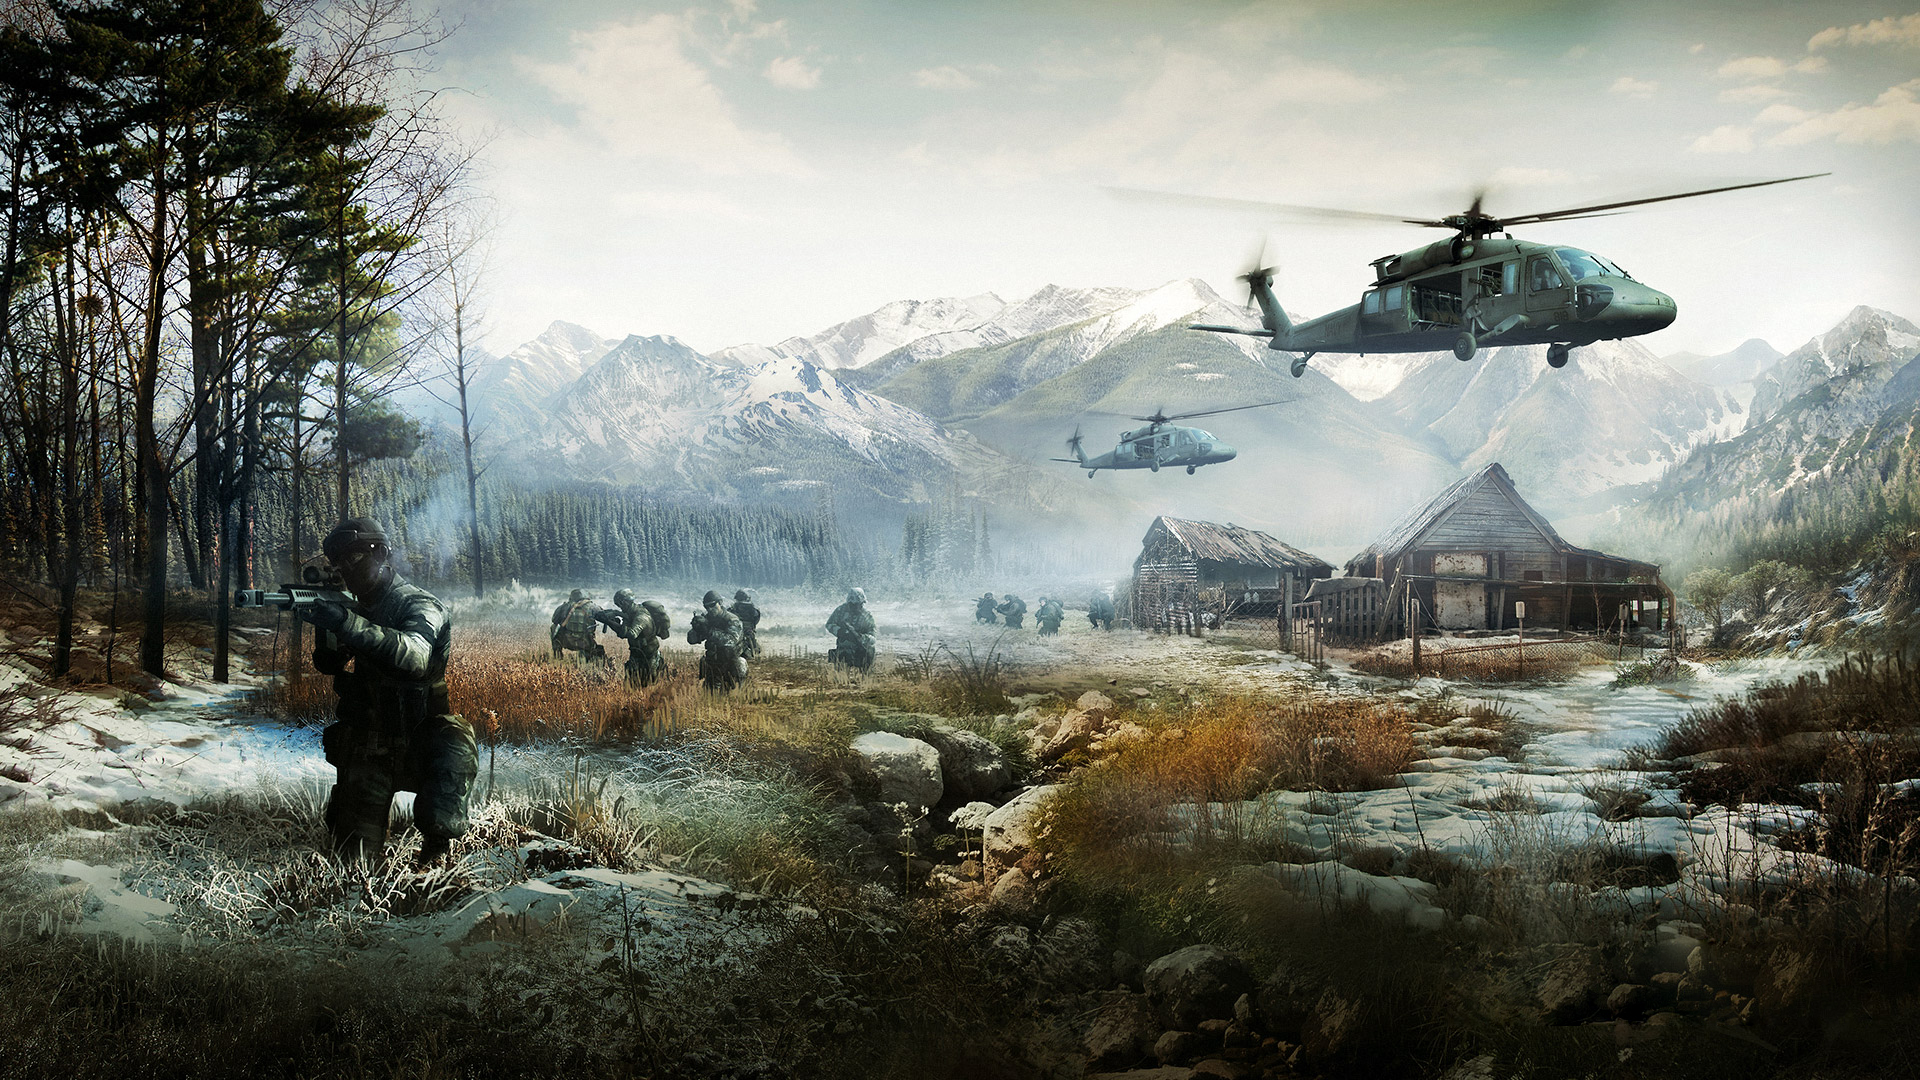 Battlefield 4 Games Wallpaper Hd: Battlefield 4 Full HD Wallpaper And Background Image